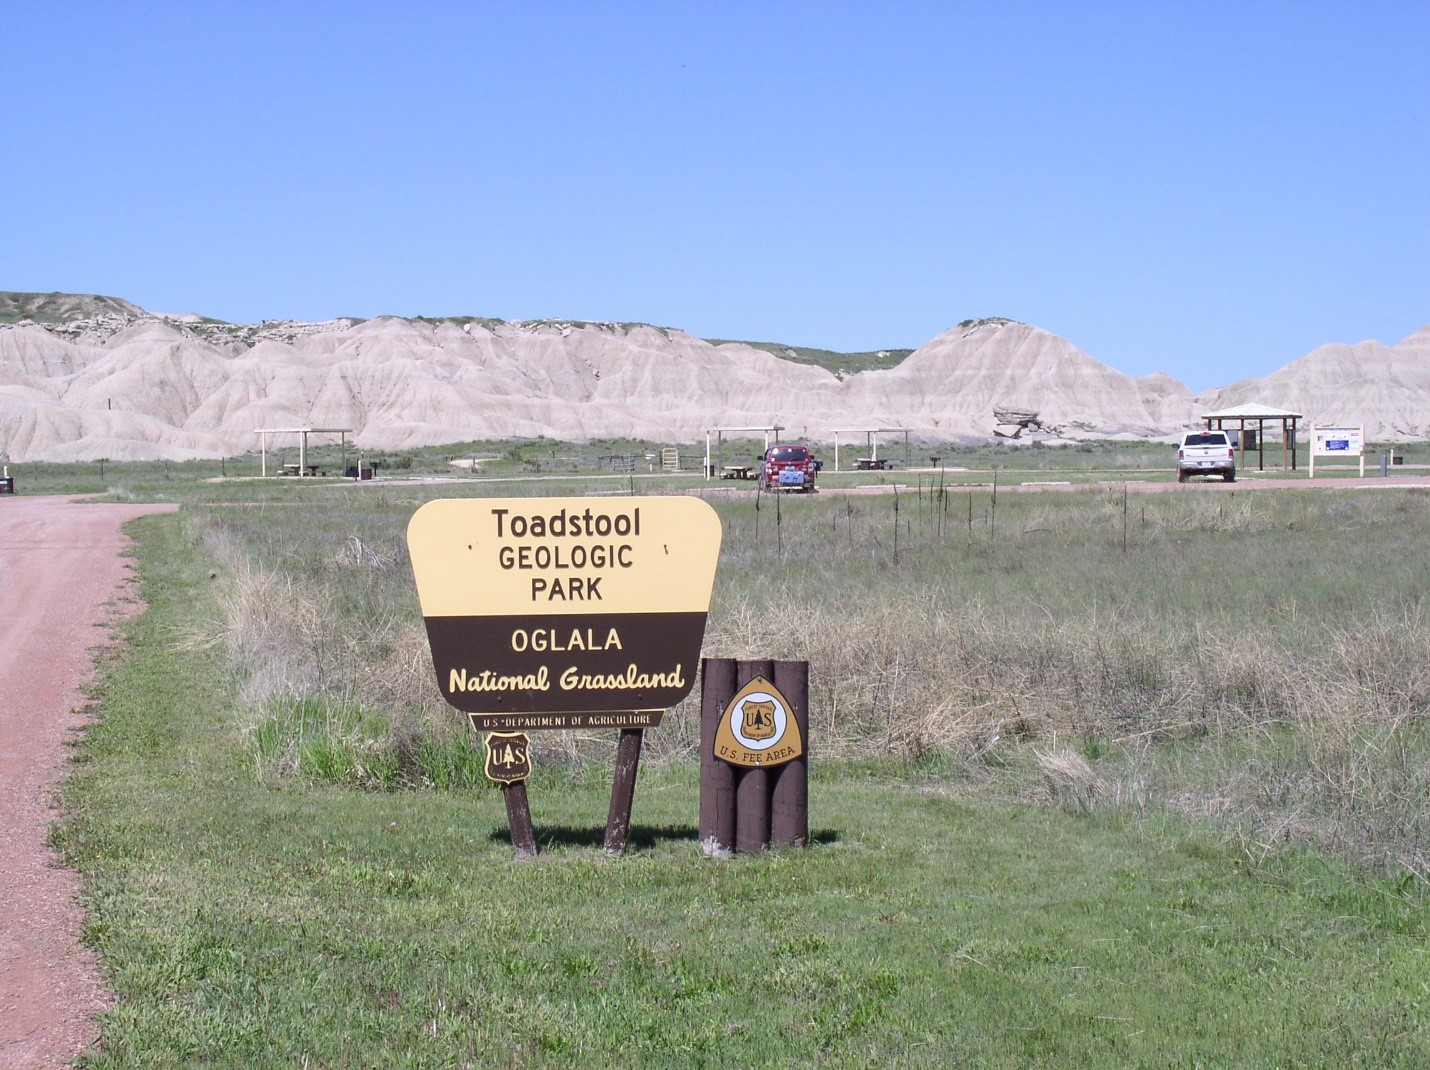 Toadstool Geologic Park sign with sites in the background